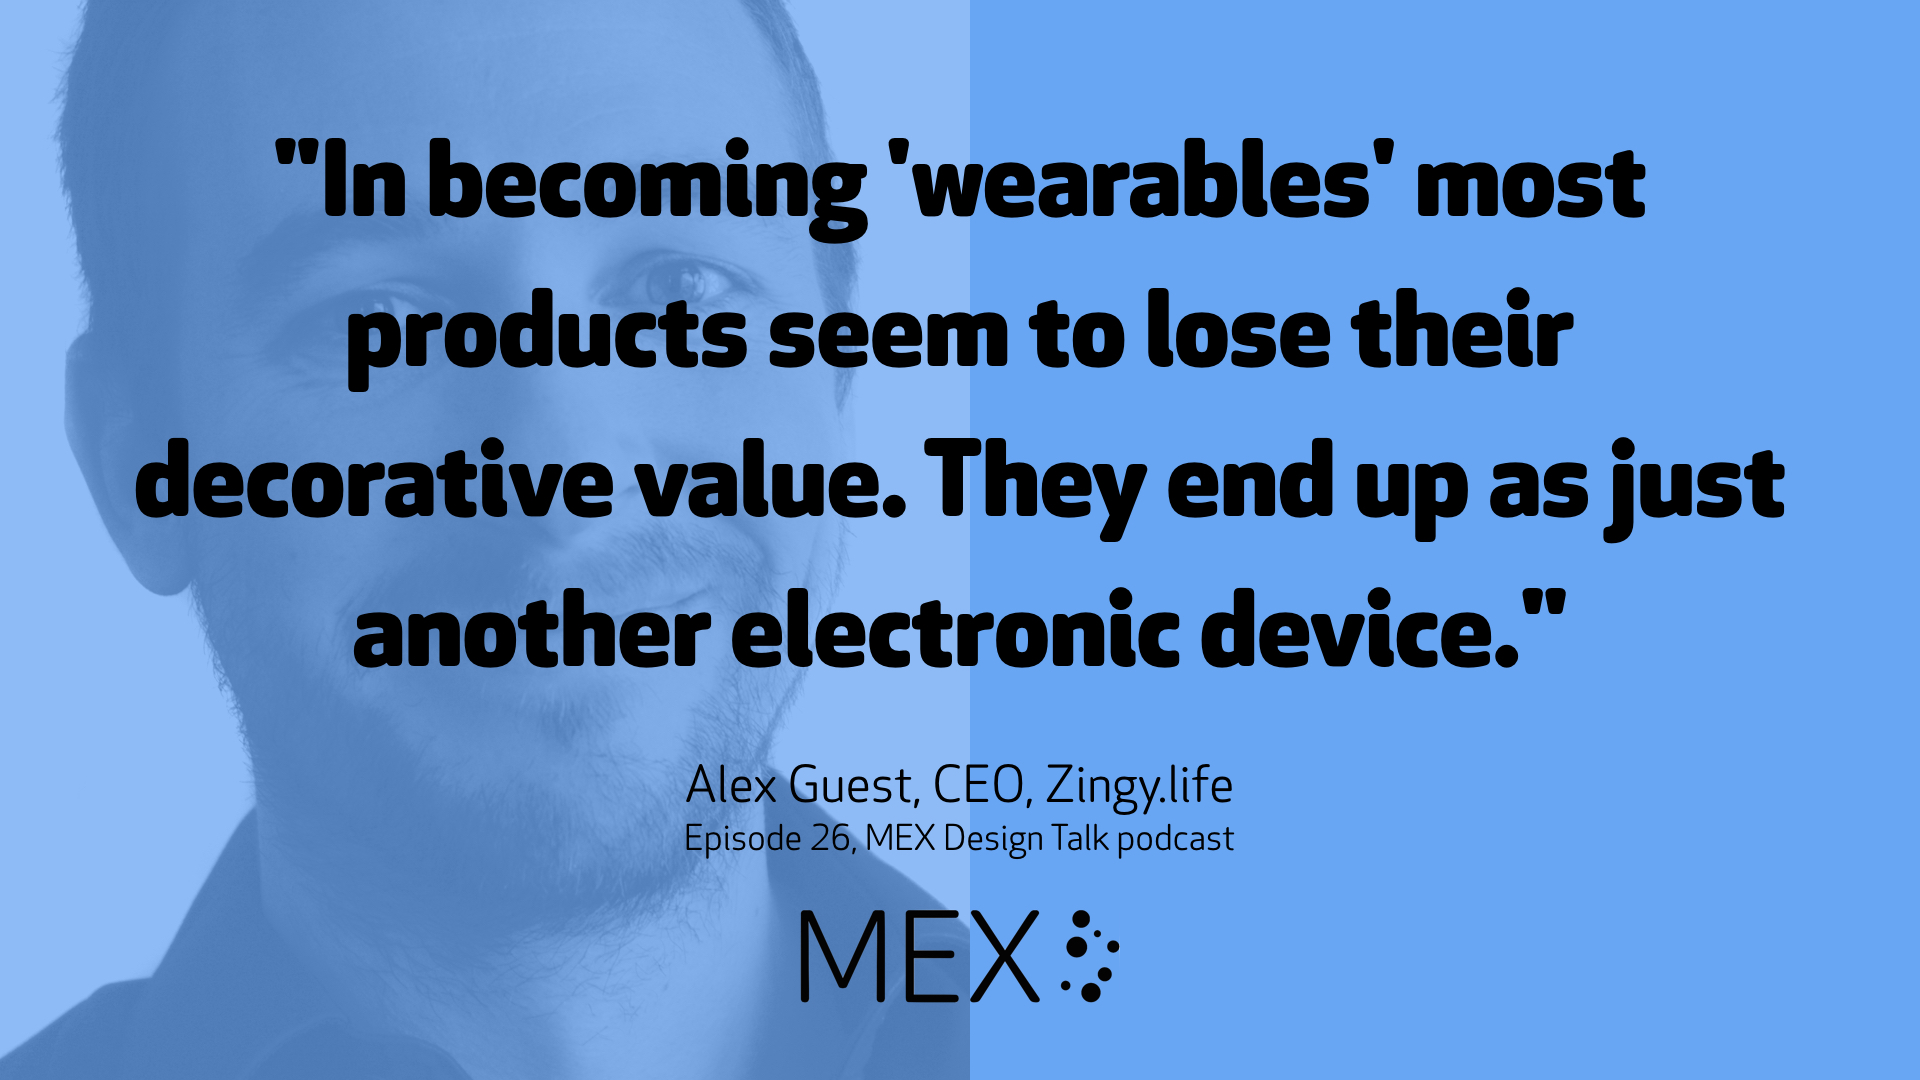 """In becoming 'wearables' most products seem to lose their decorative value. They end up as just another electronic device."" Alex Guest, CEO, Zingy.life Episode 26, MEX Design Talk podcast"